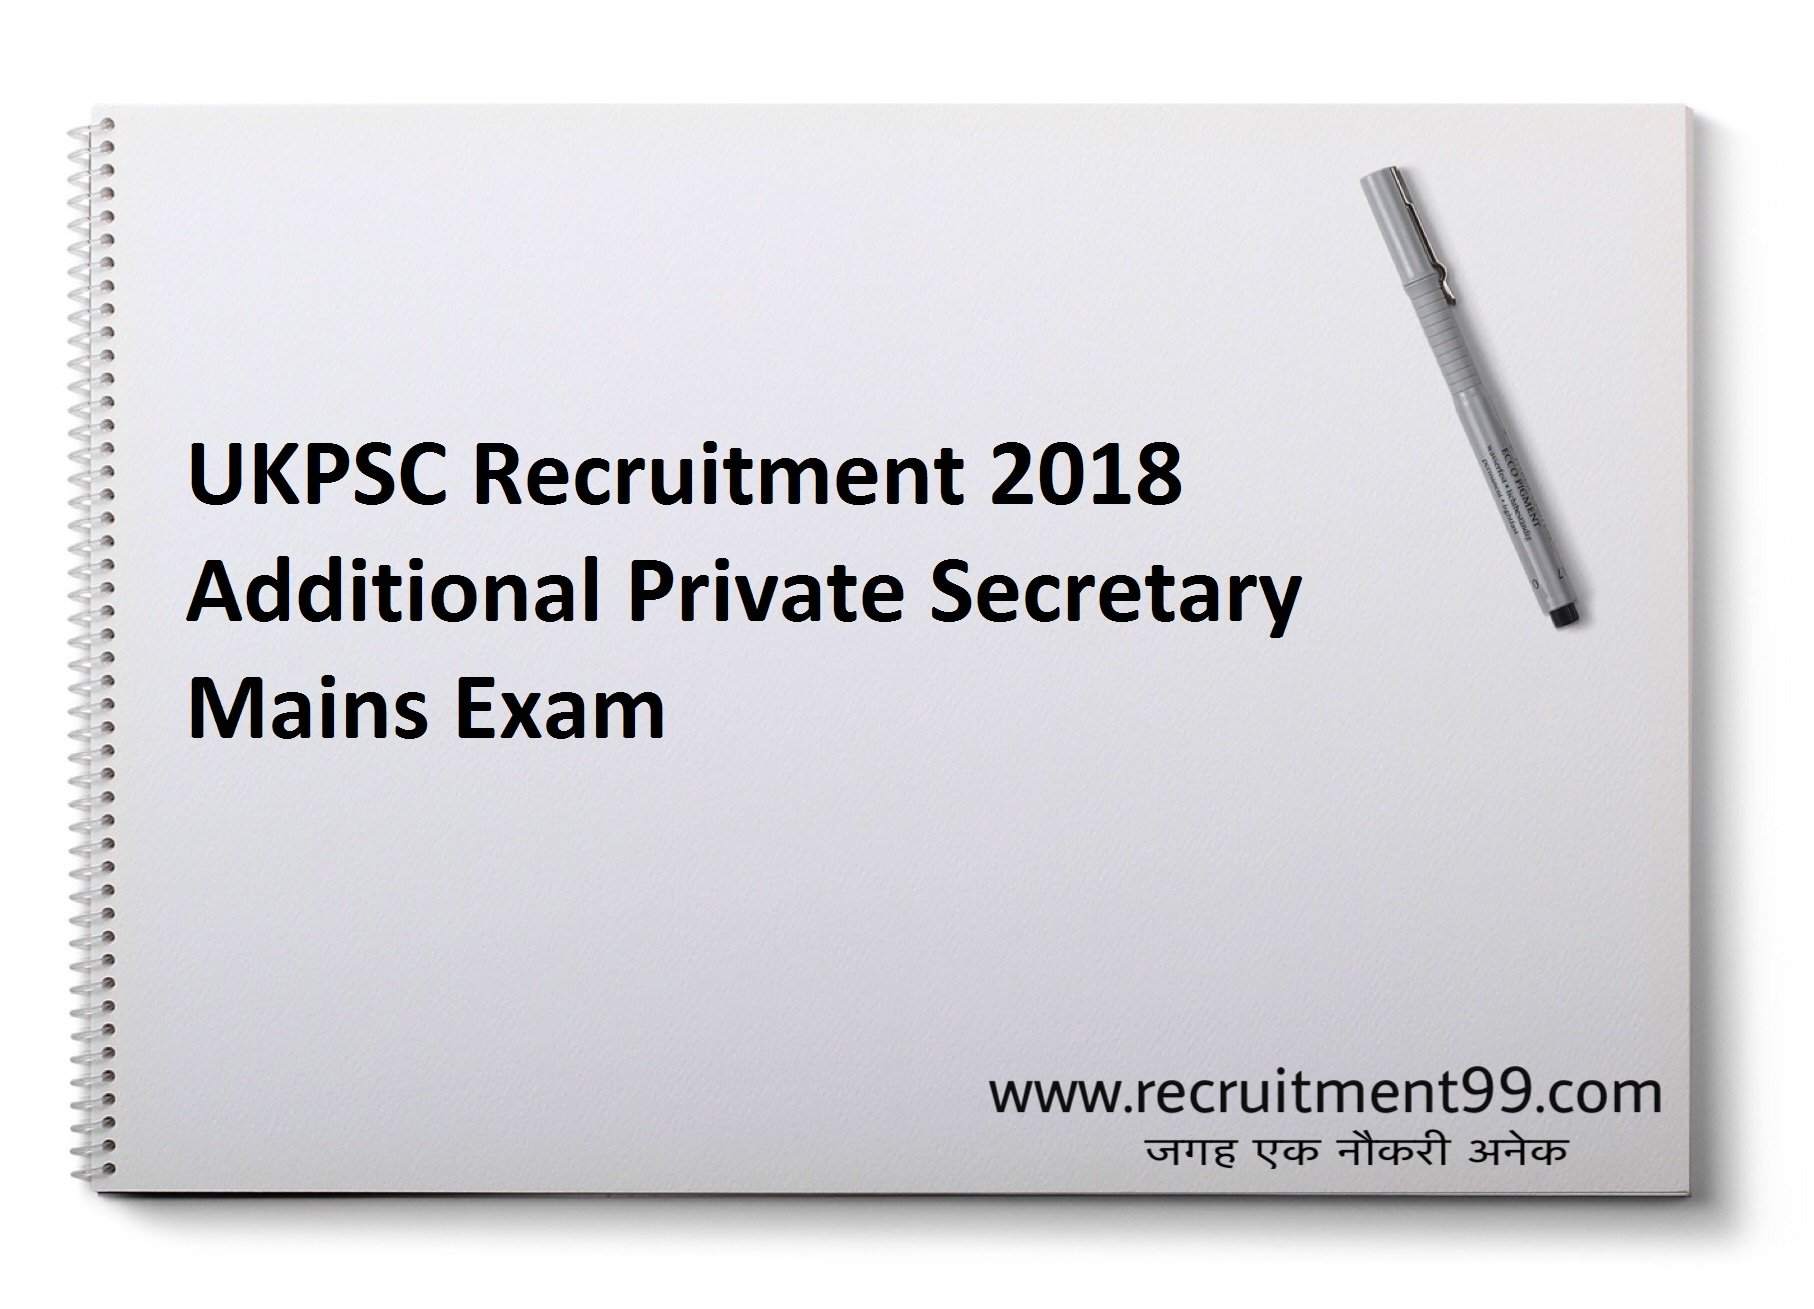 UKPSC Additional Private Secretary Recruitment Admit Card  Result 2018